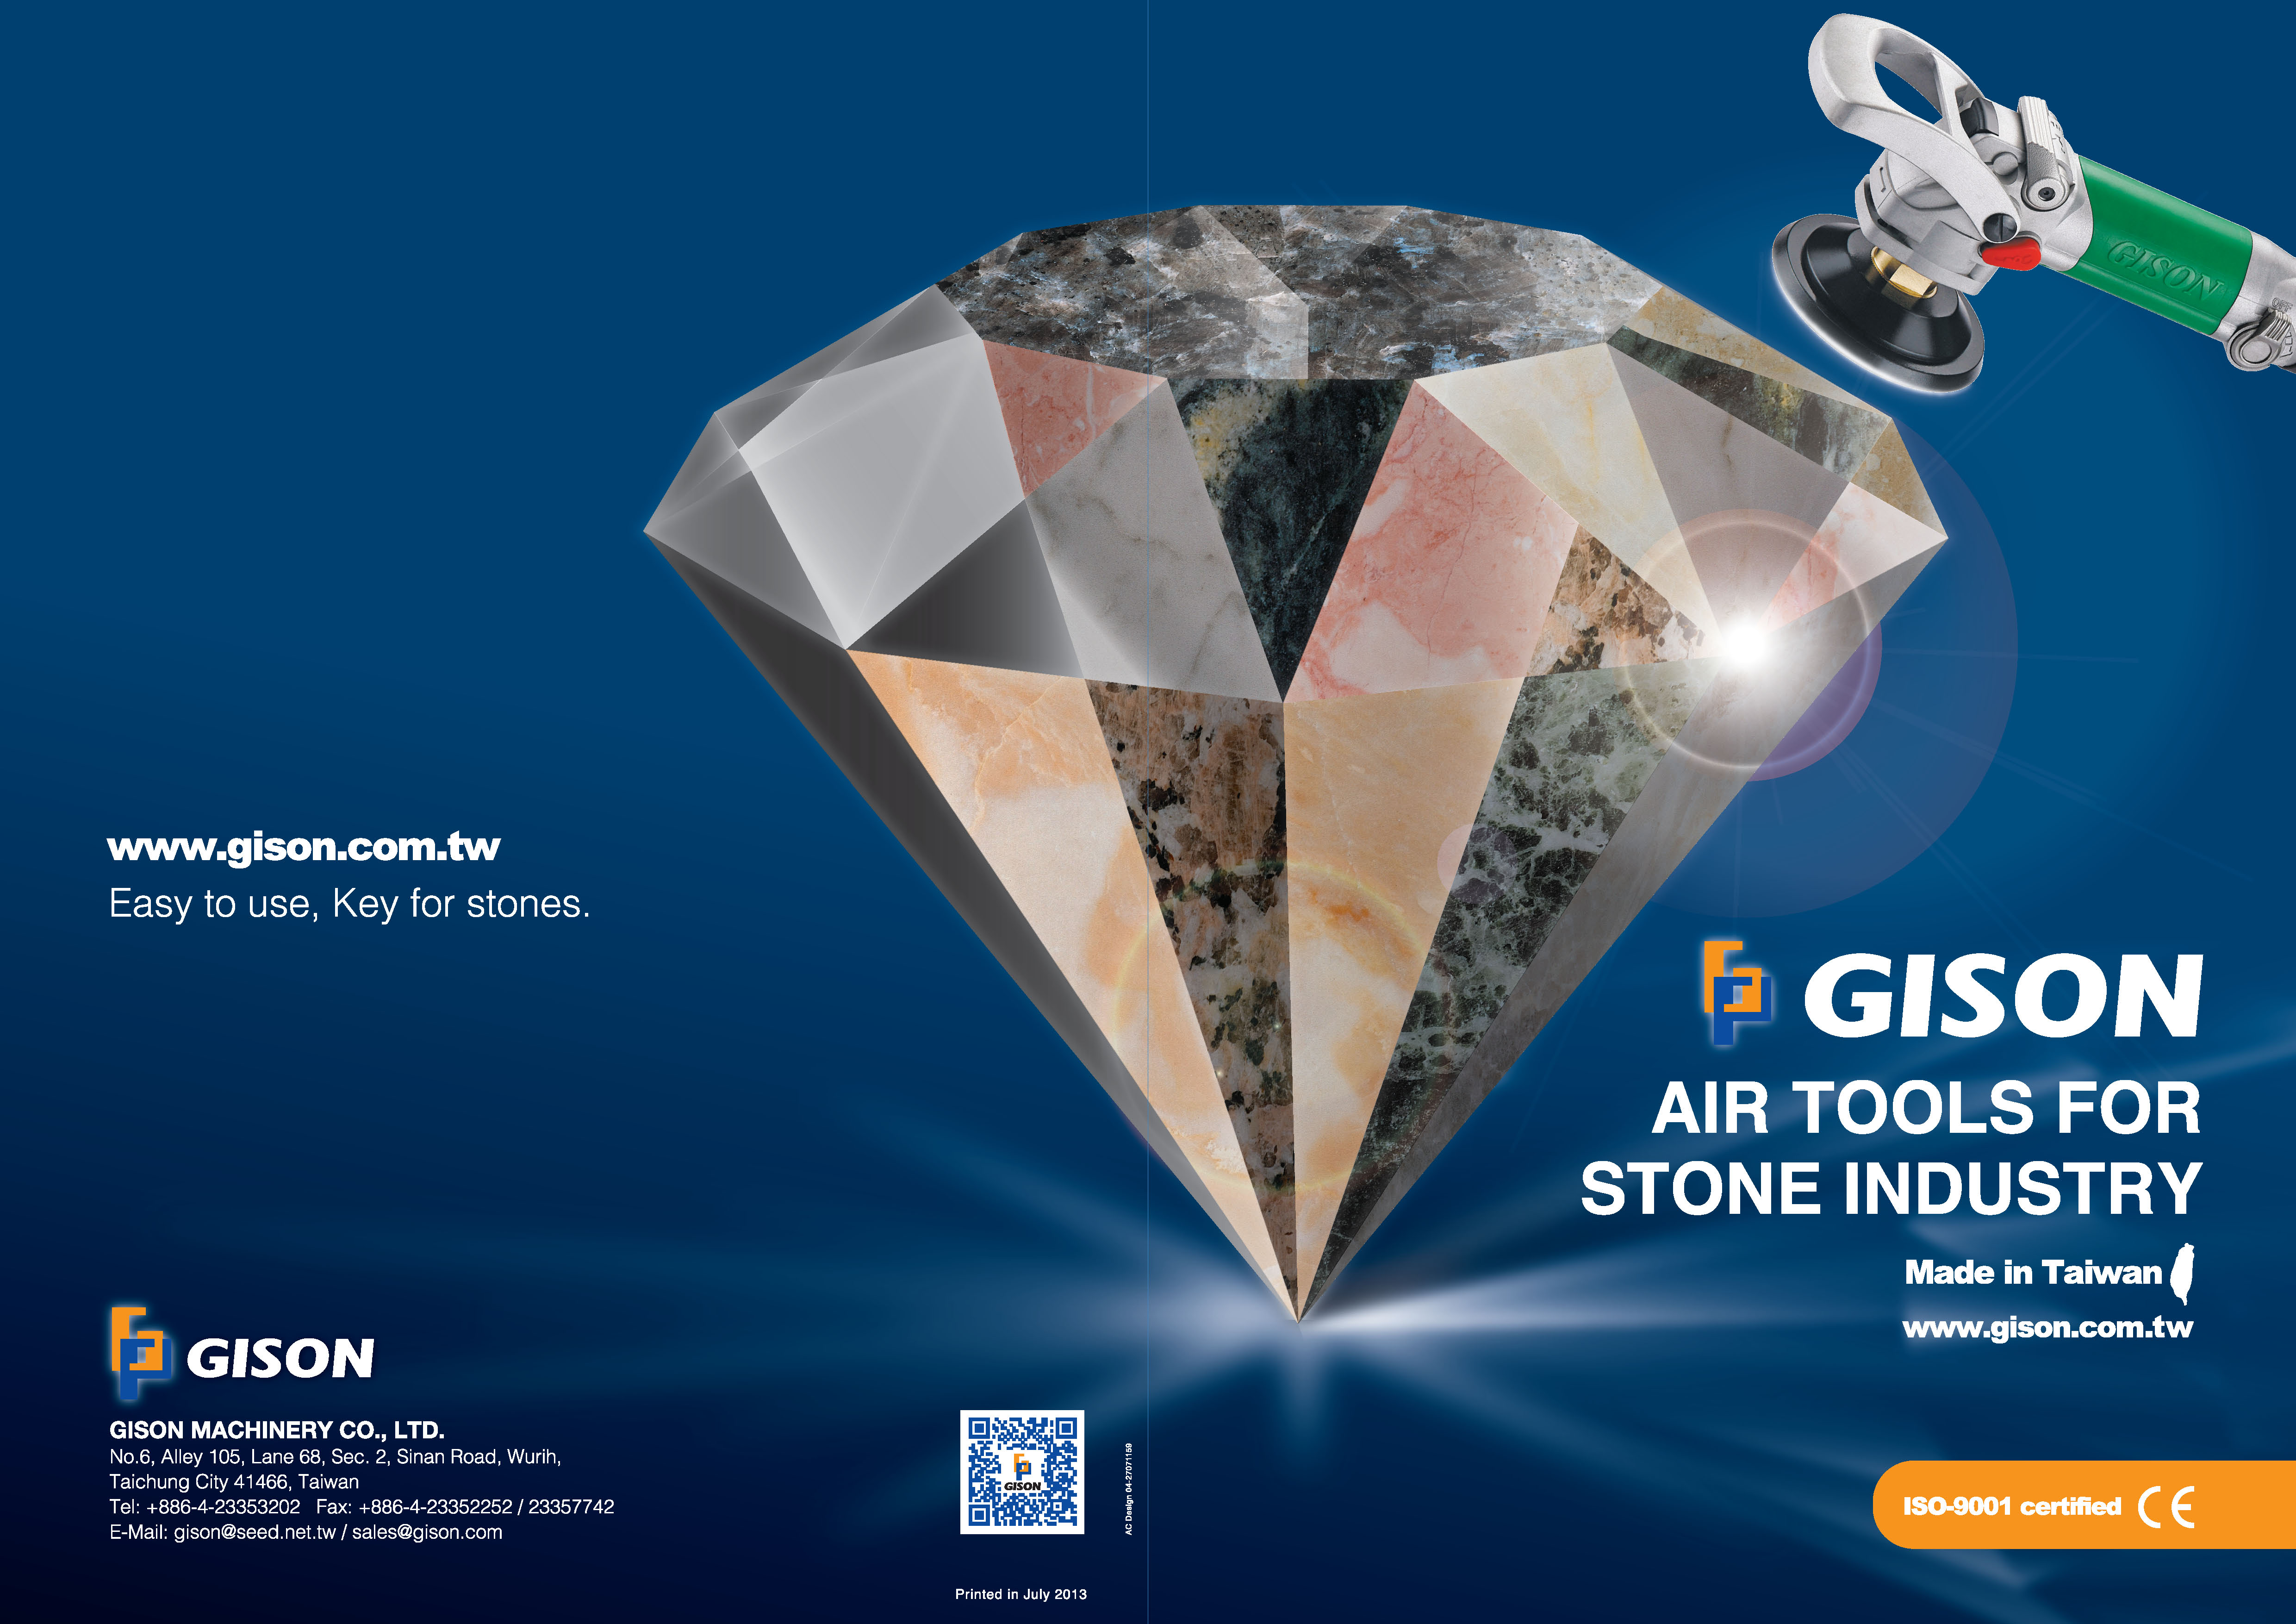 2013-2014 GISON Wet Air Tools for Stone,Marble,Granite Catalog - 2013-2014 GISON Wet Air Tools for Stone,Marble,Granite